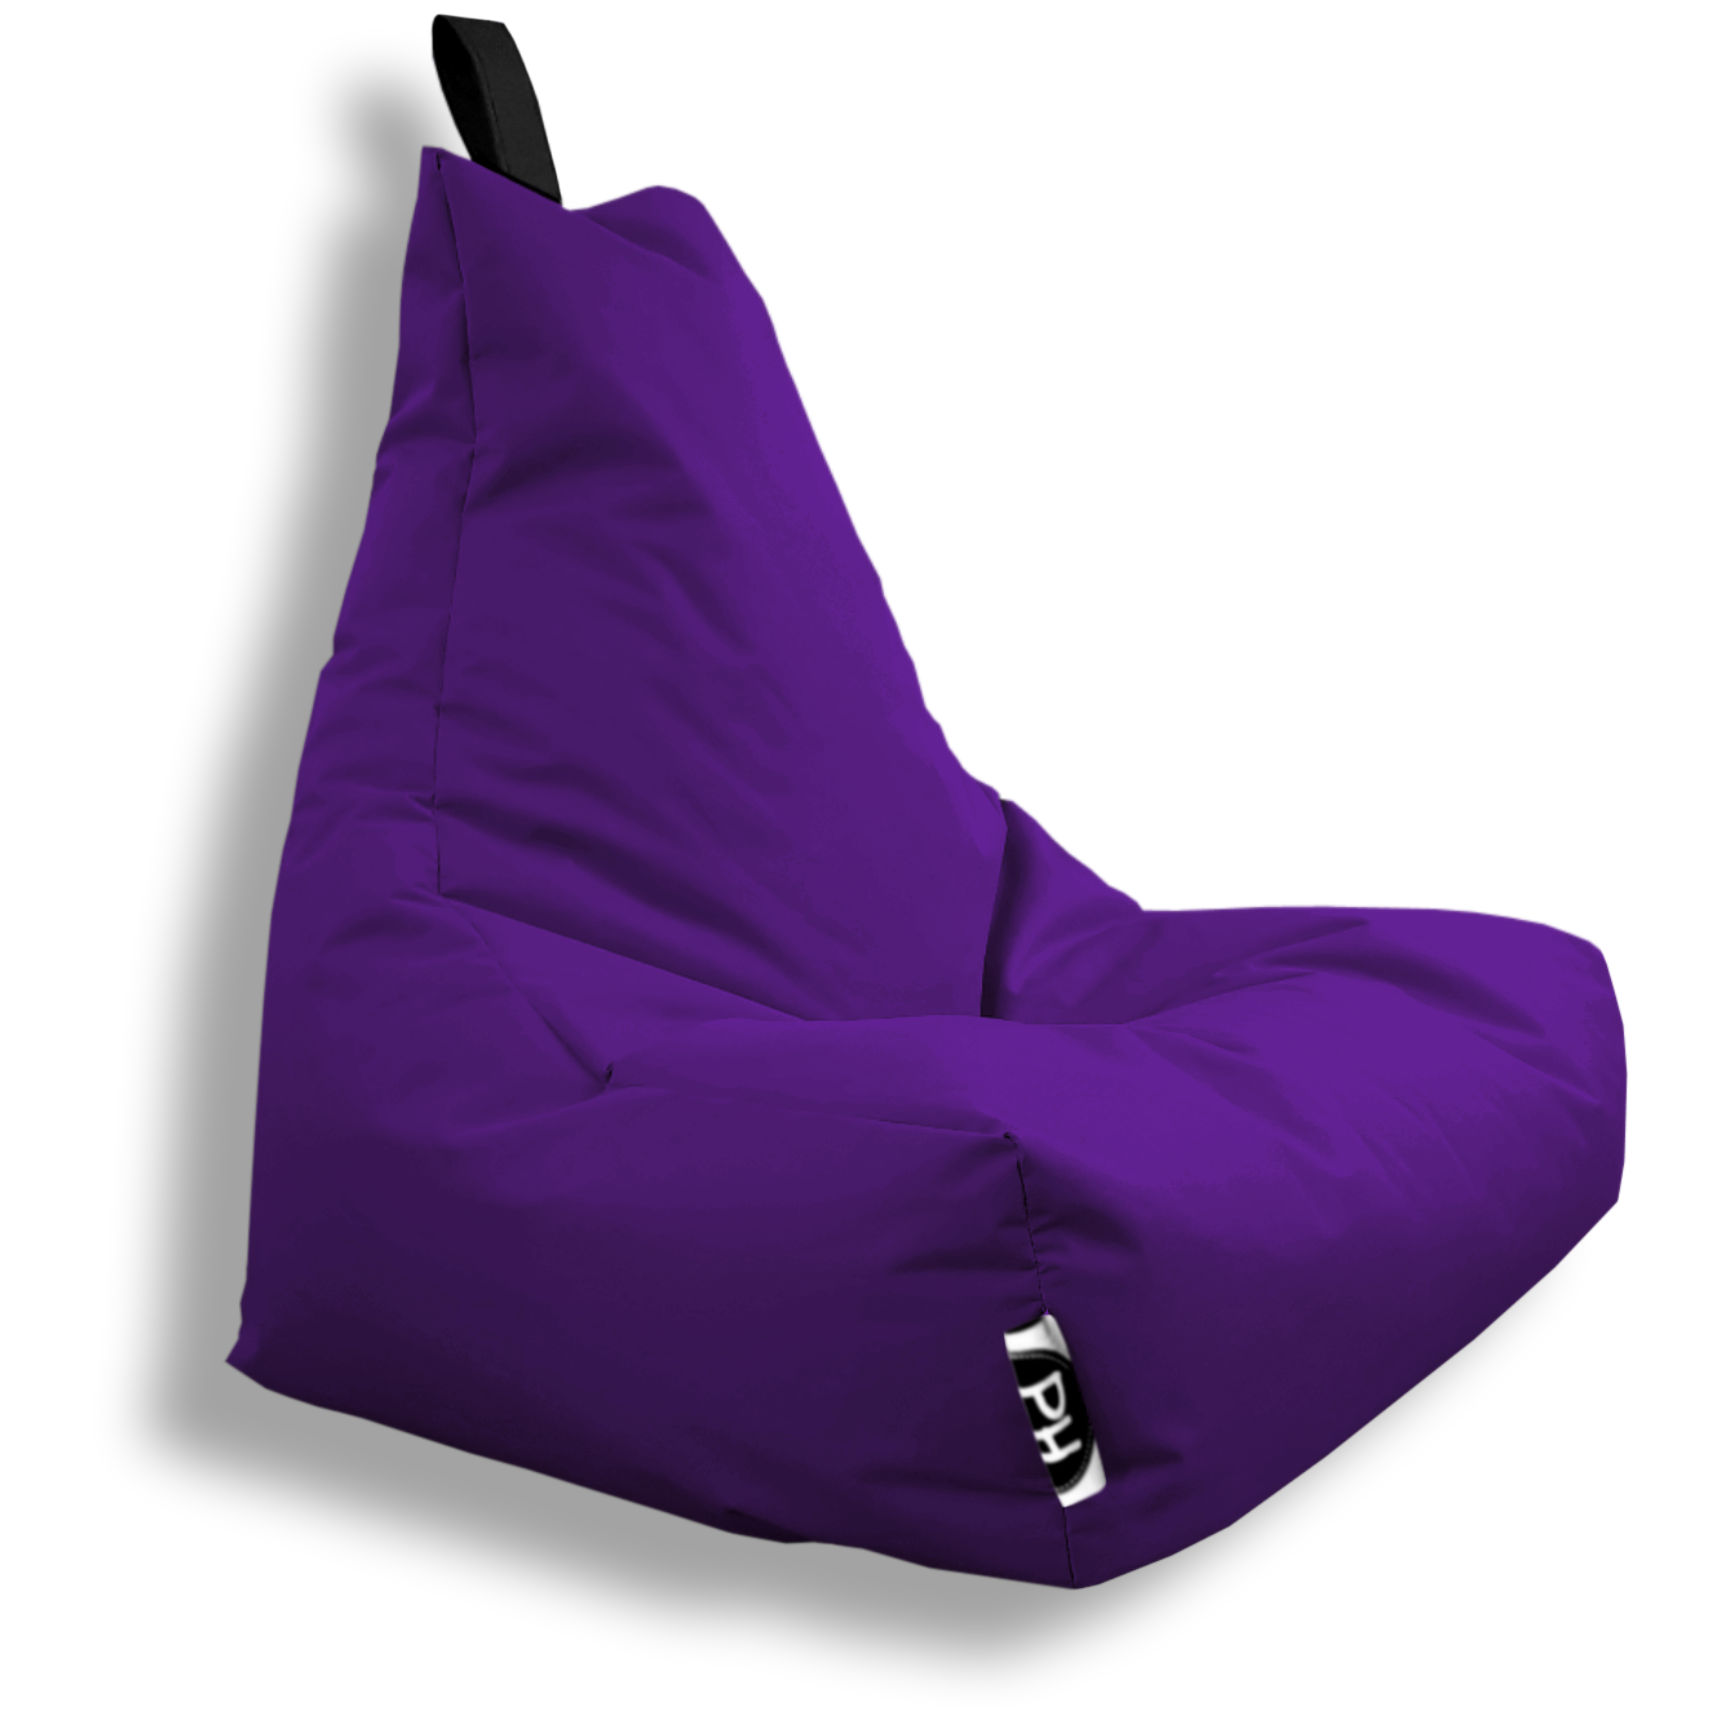 Lounge Sessel Lila Patchhome Lounge Sessel Gamer Sitzkissen In Diversen